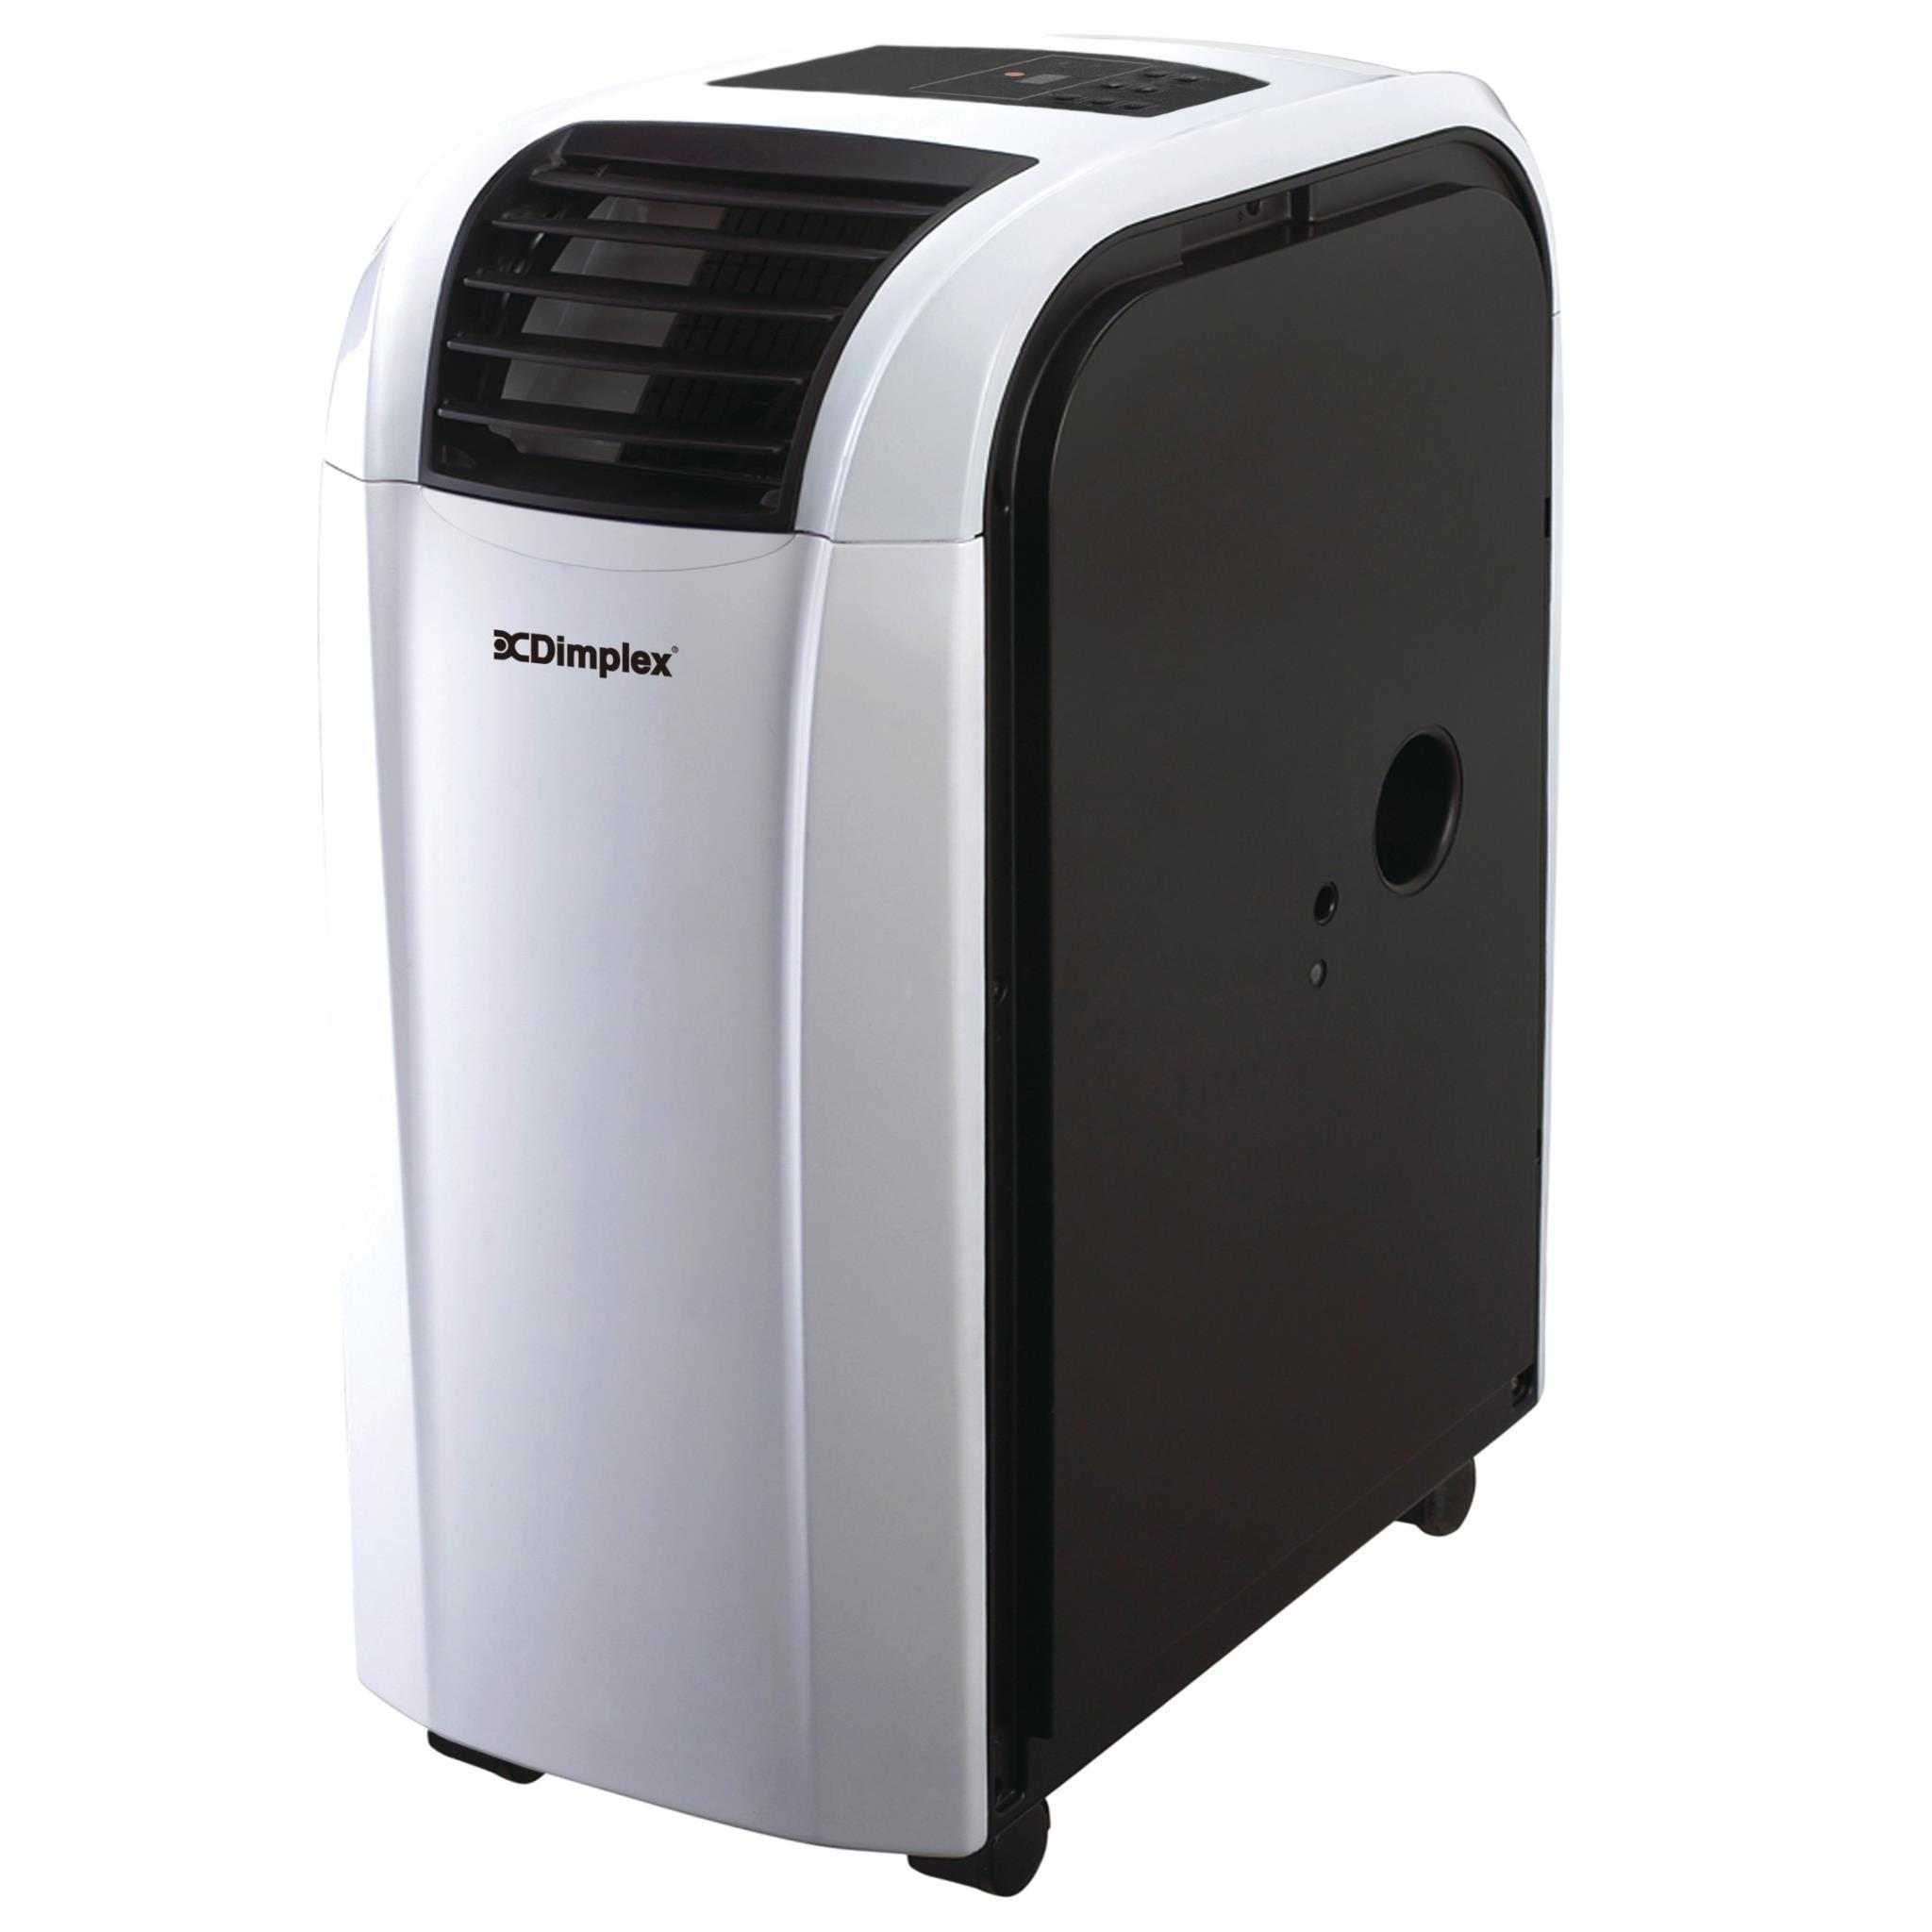 Dimplex DC10RC 3kW Reverse Cycle Portable Air Conditioner